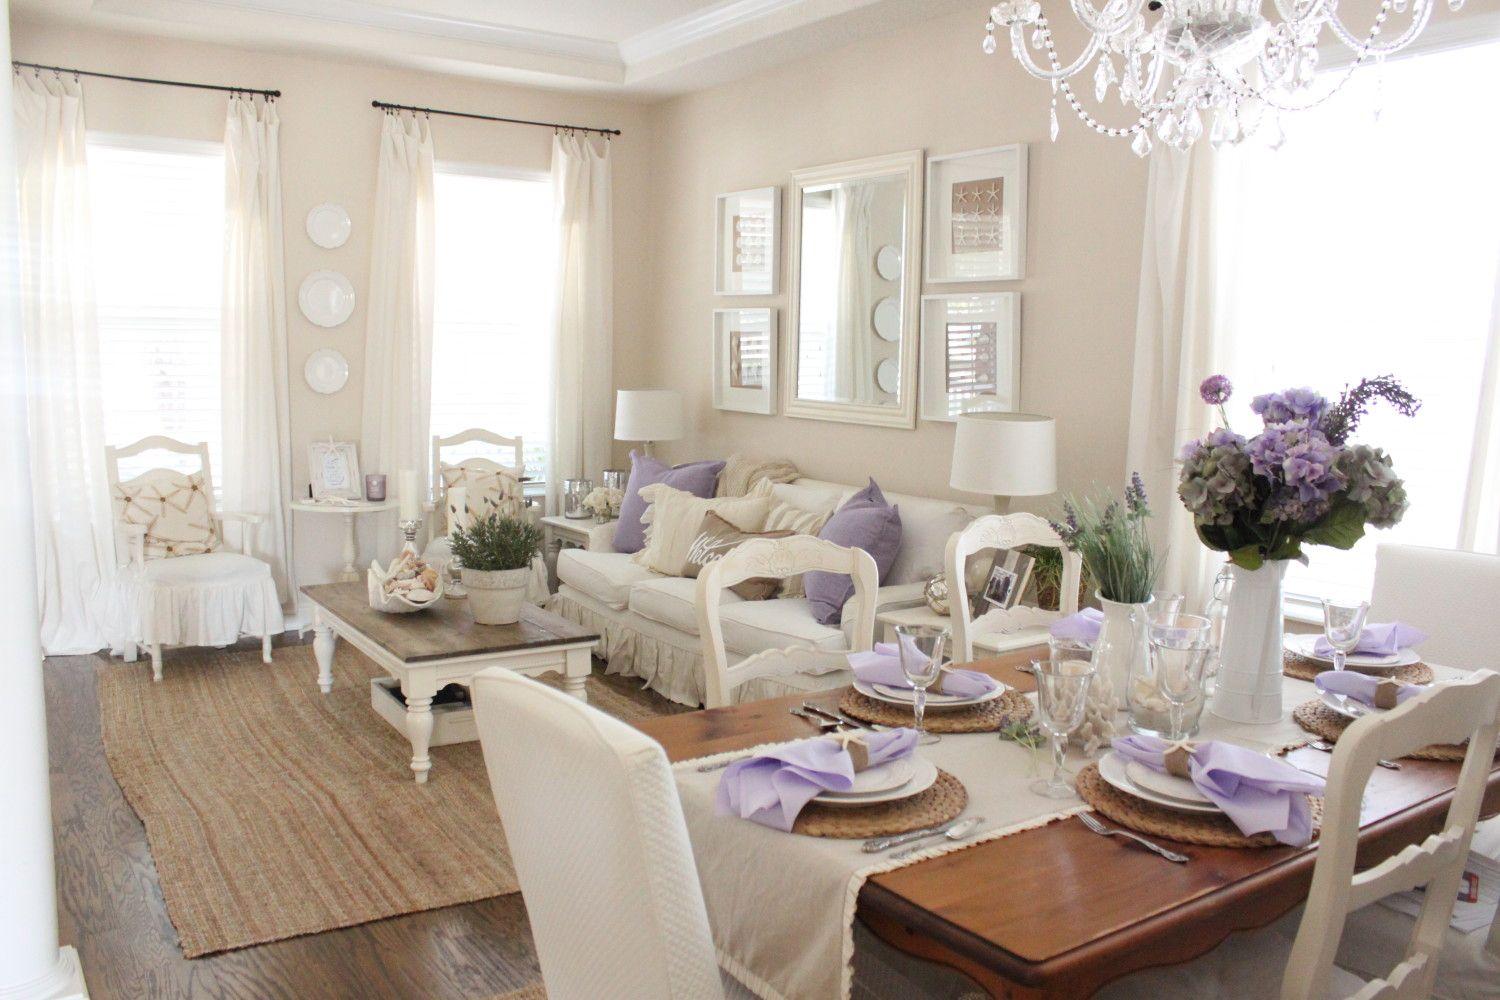 Lavender in the Living Room | Starfish, Living rooms and Room